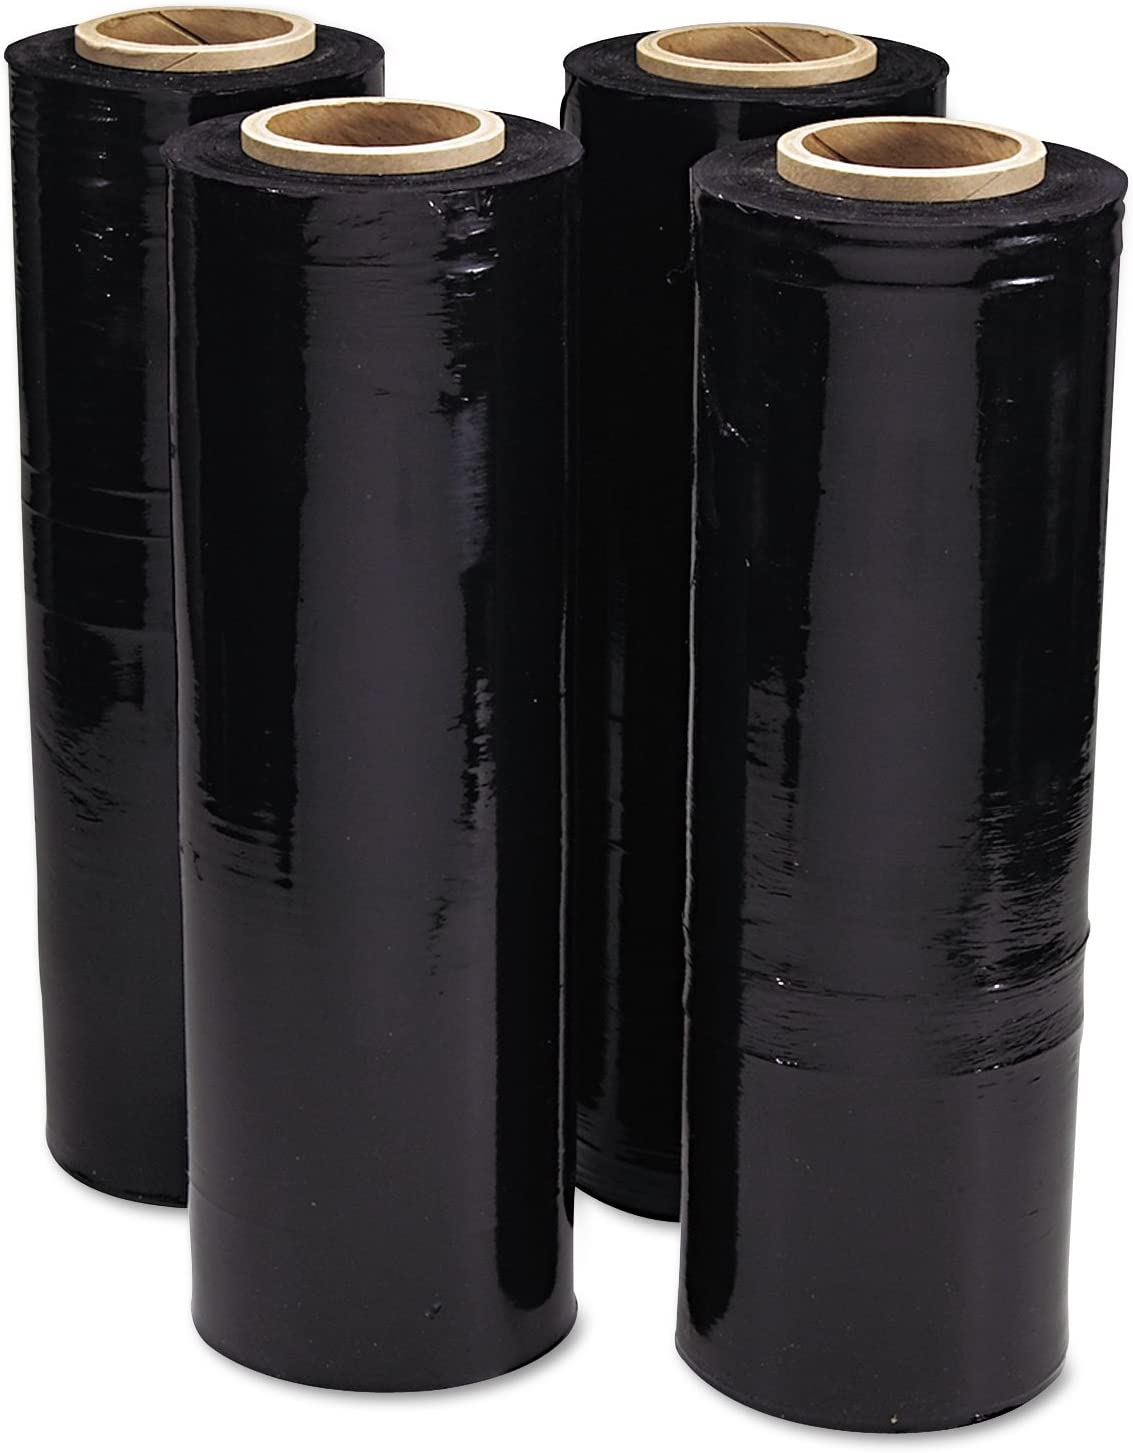 1 handle offered Lot of 10 rolls black stretch film 23 µ 10 x 150